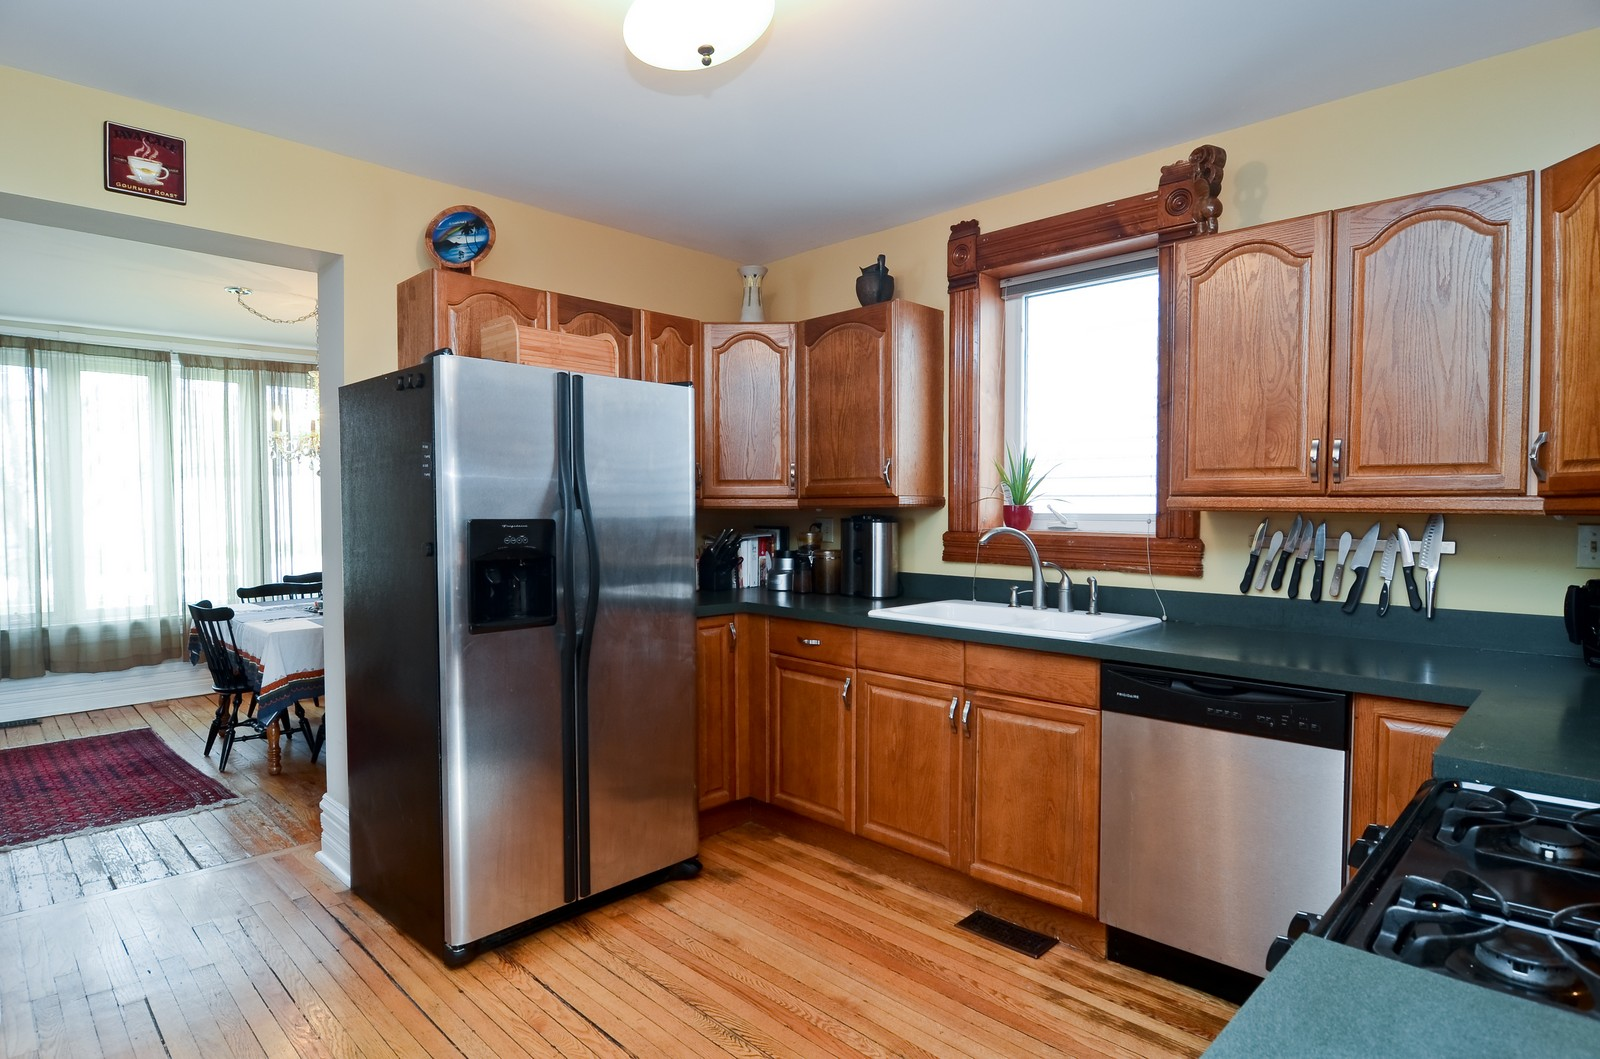 Real Estate Photography - 3525 W Wollfram, Chicago, IL, 60618 - Kitchen / Dining Room